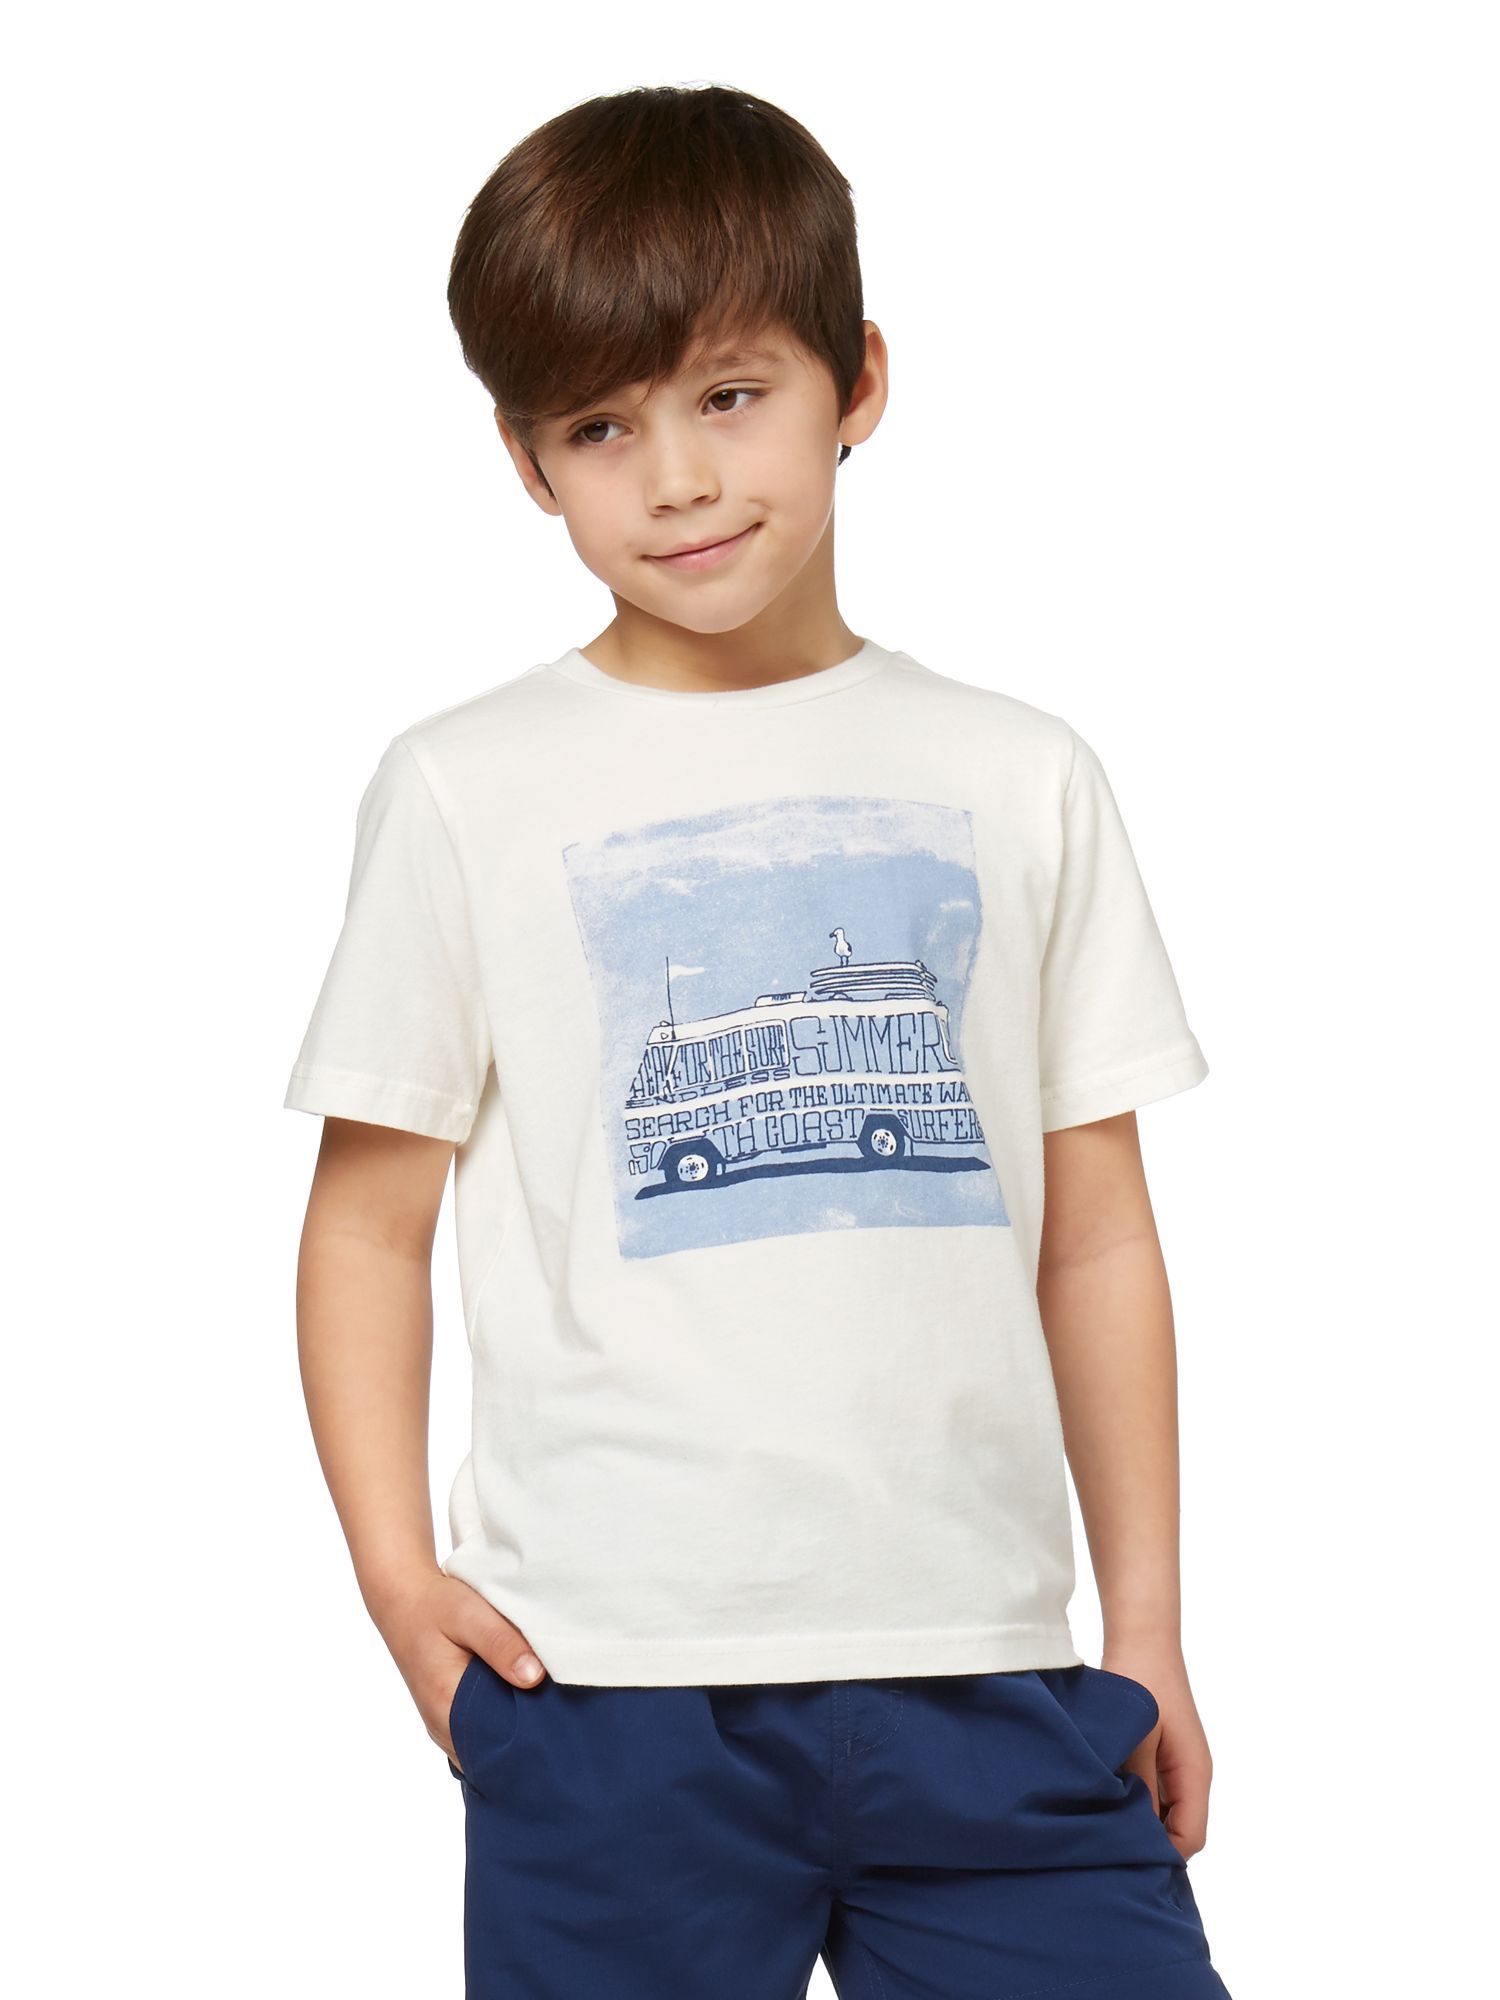 Boys camper graphic t-shirt